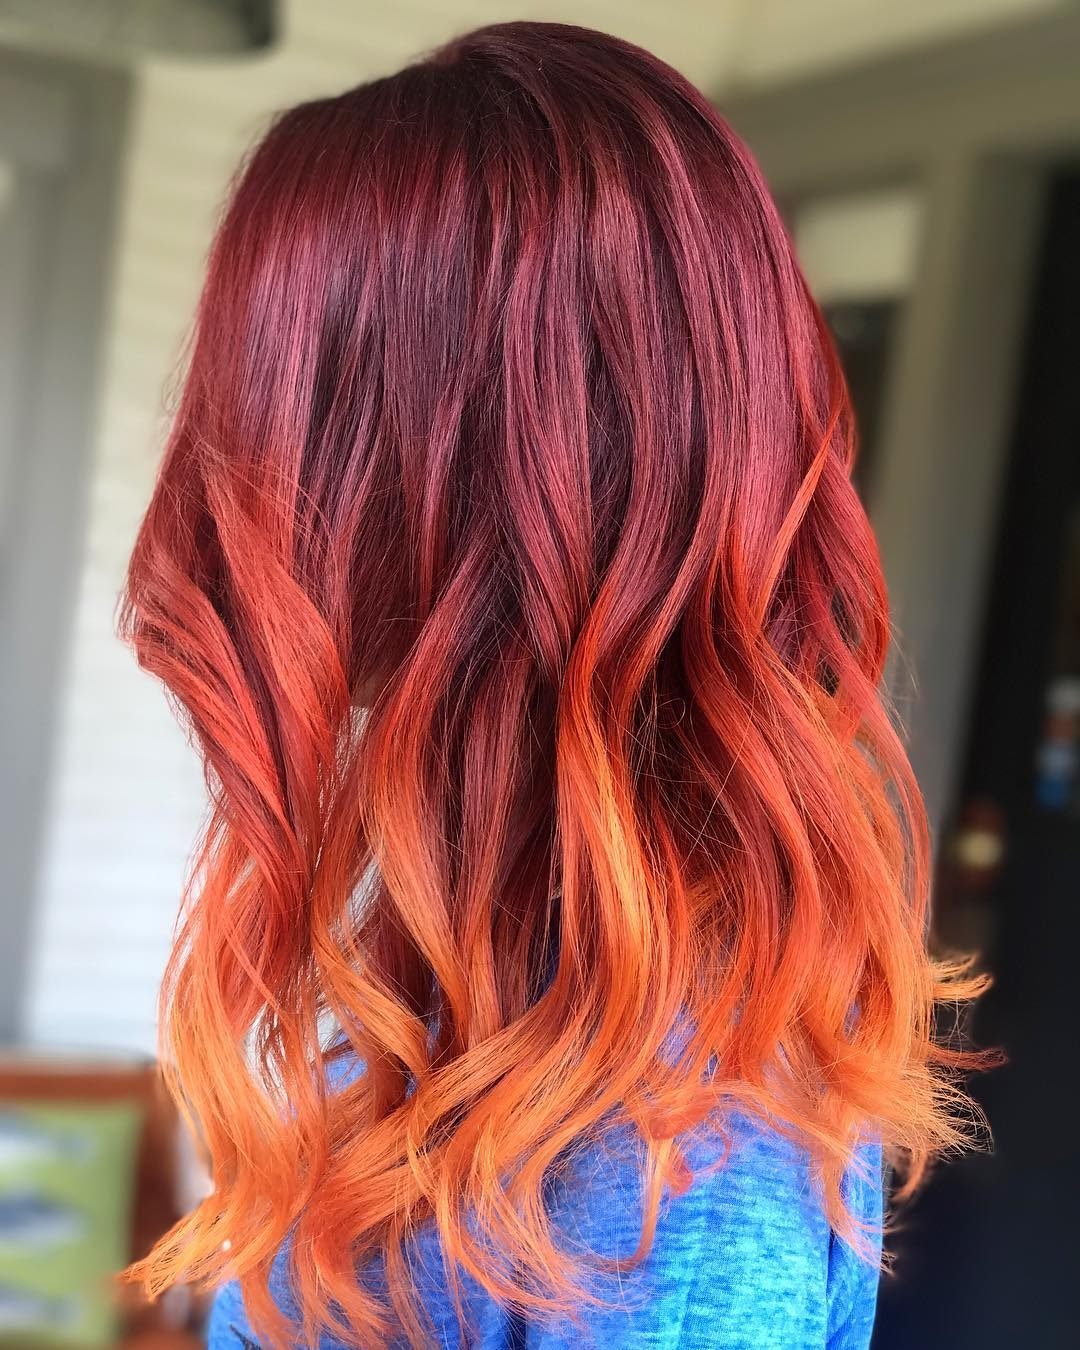 30 hottest ombre hair color ideas 2018 photos of best ombre hairstyles her style code. Black Bedroom Furniture Sets. Home Design Ideas